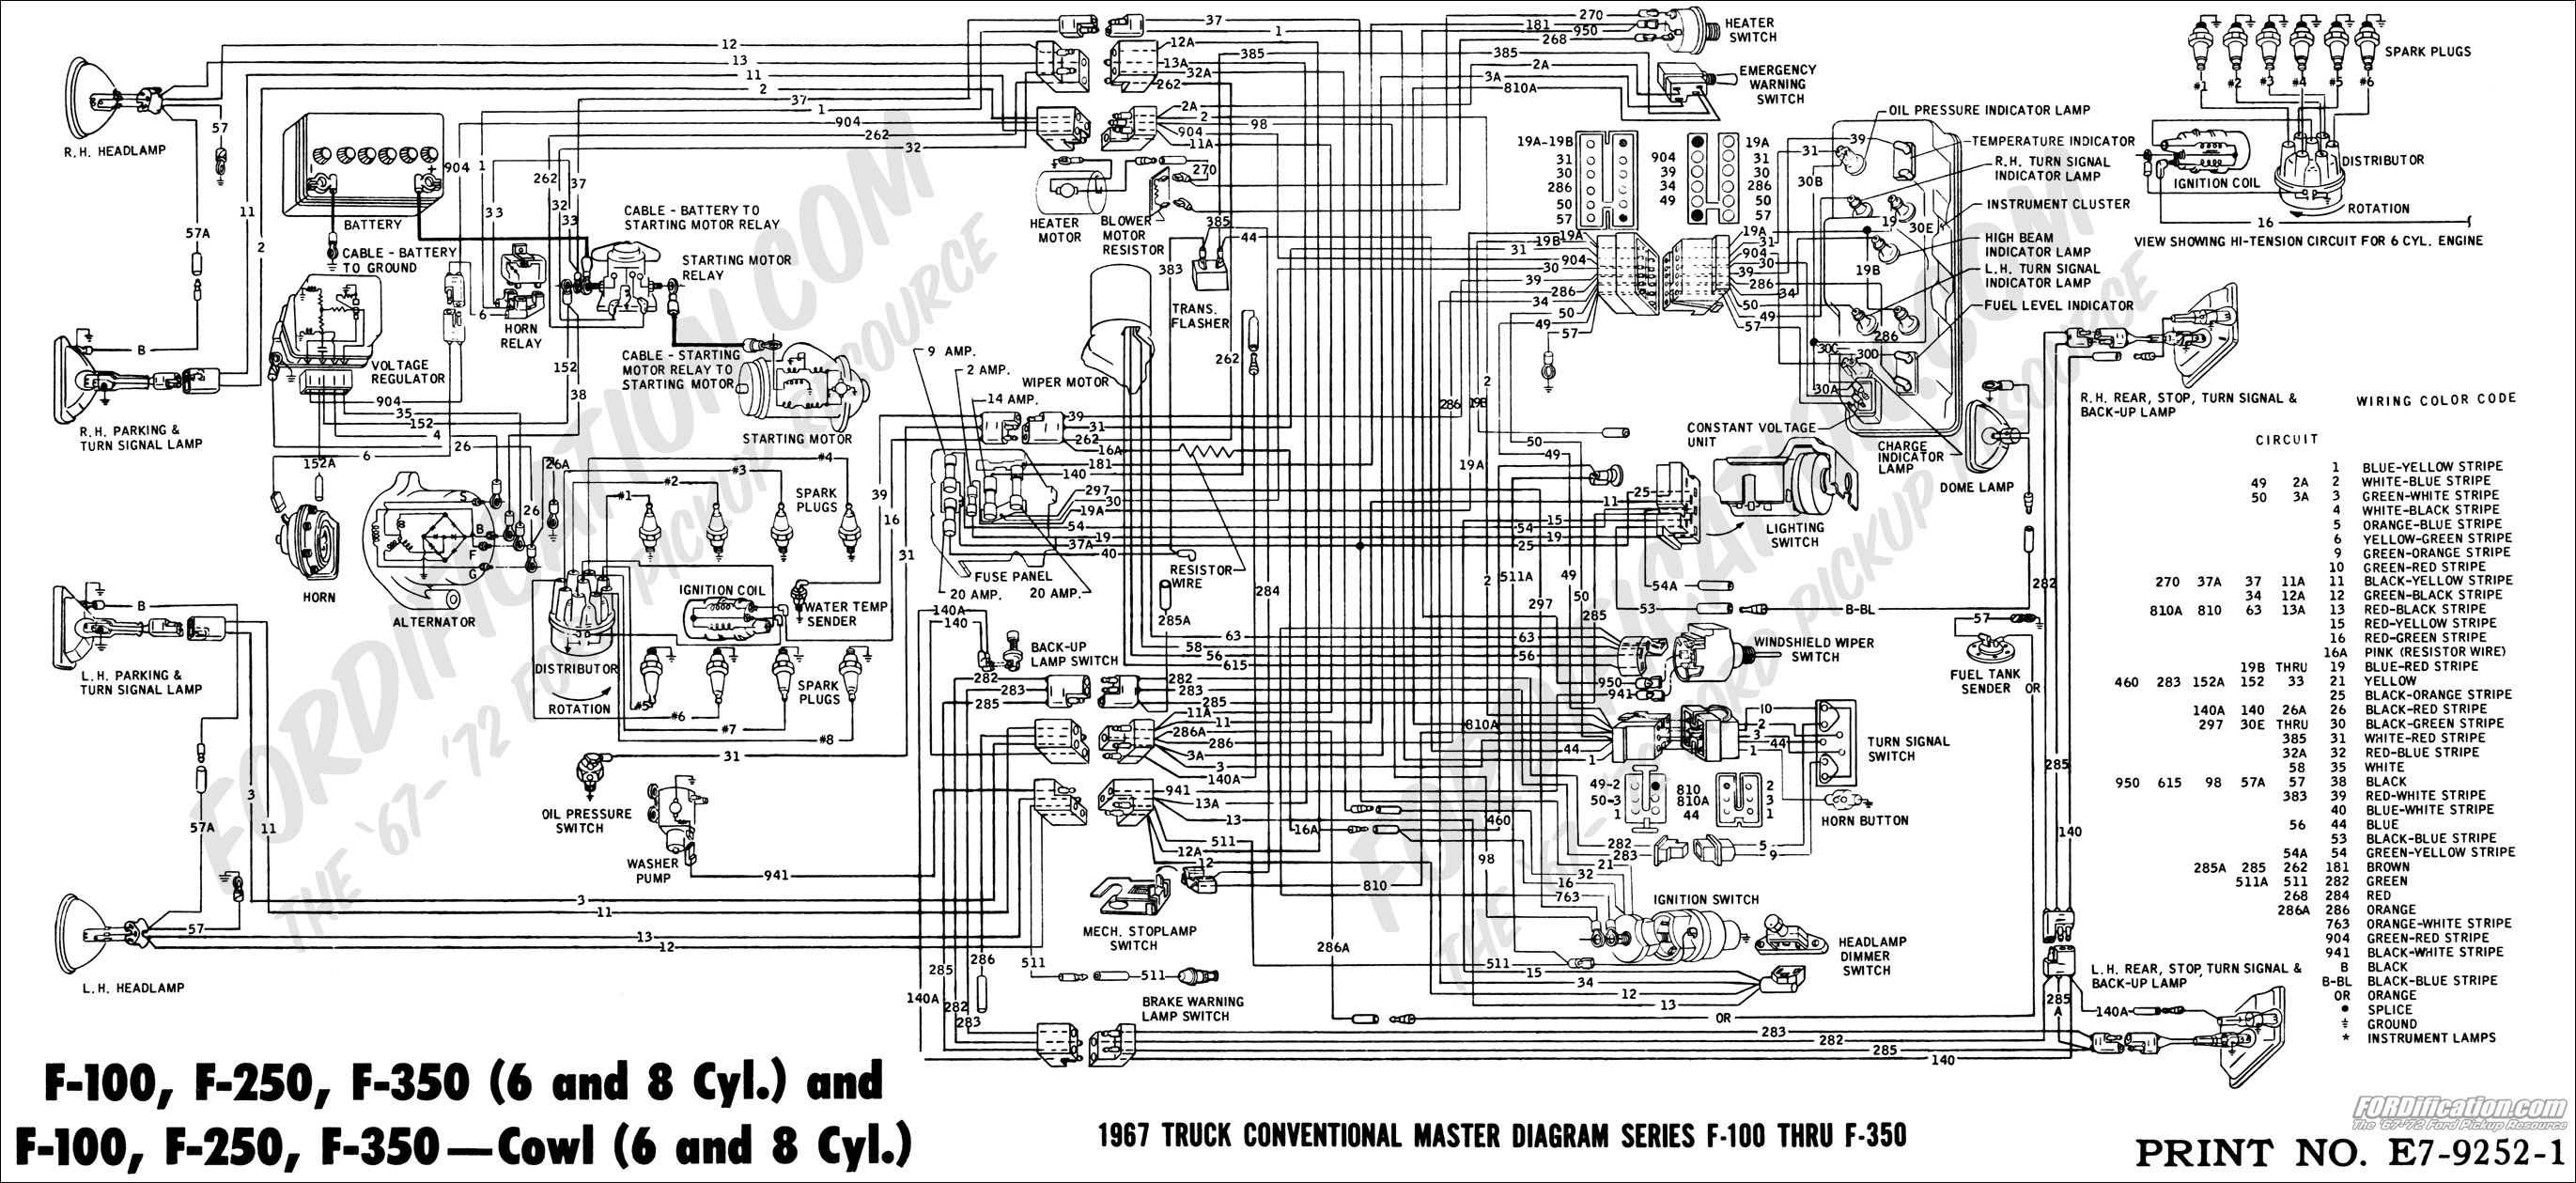 1928 Ford Truck Wiring Diagram | Wiring Diagram  F Engine Diagram on 93 cherokee engine, 93 cavalier engine, 93 ford f 900 engine, 93 capri engine, 93 regal engine, 93 accord engine,